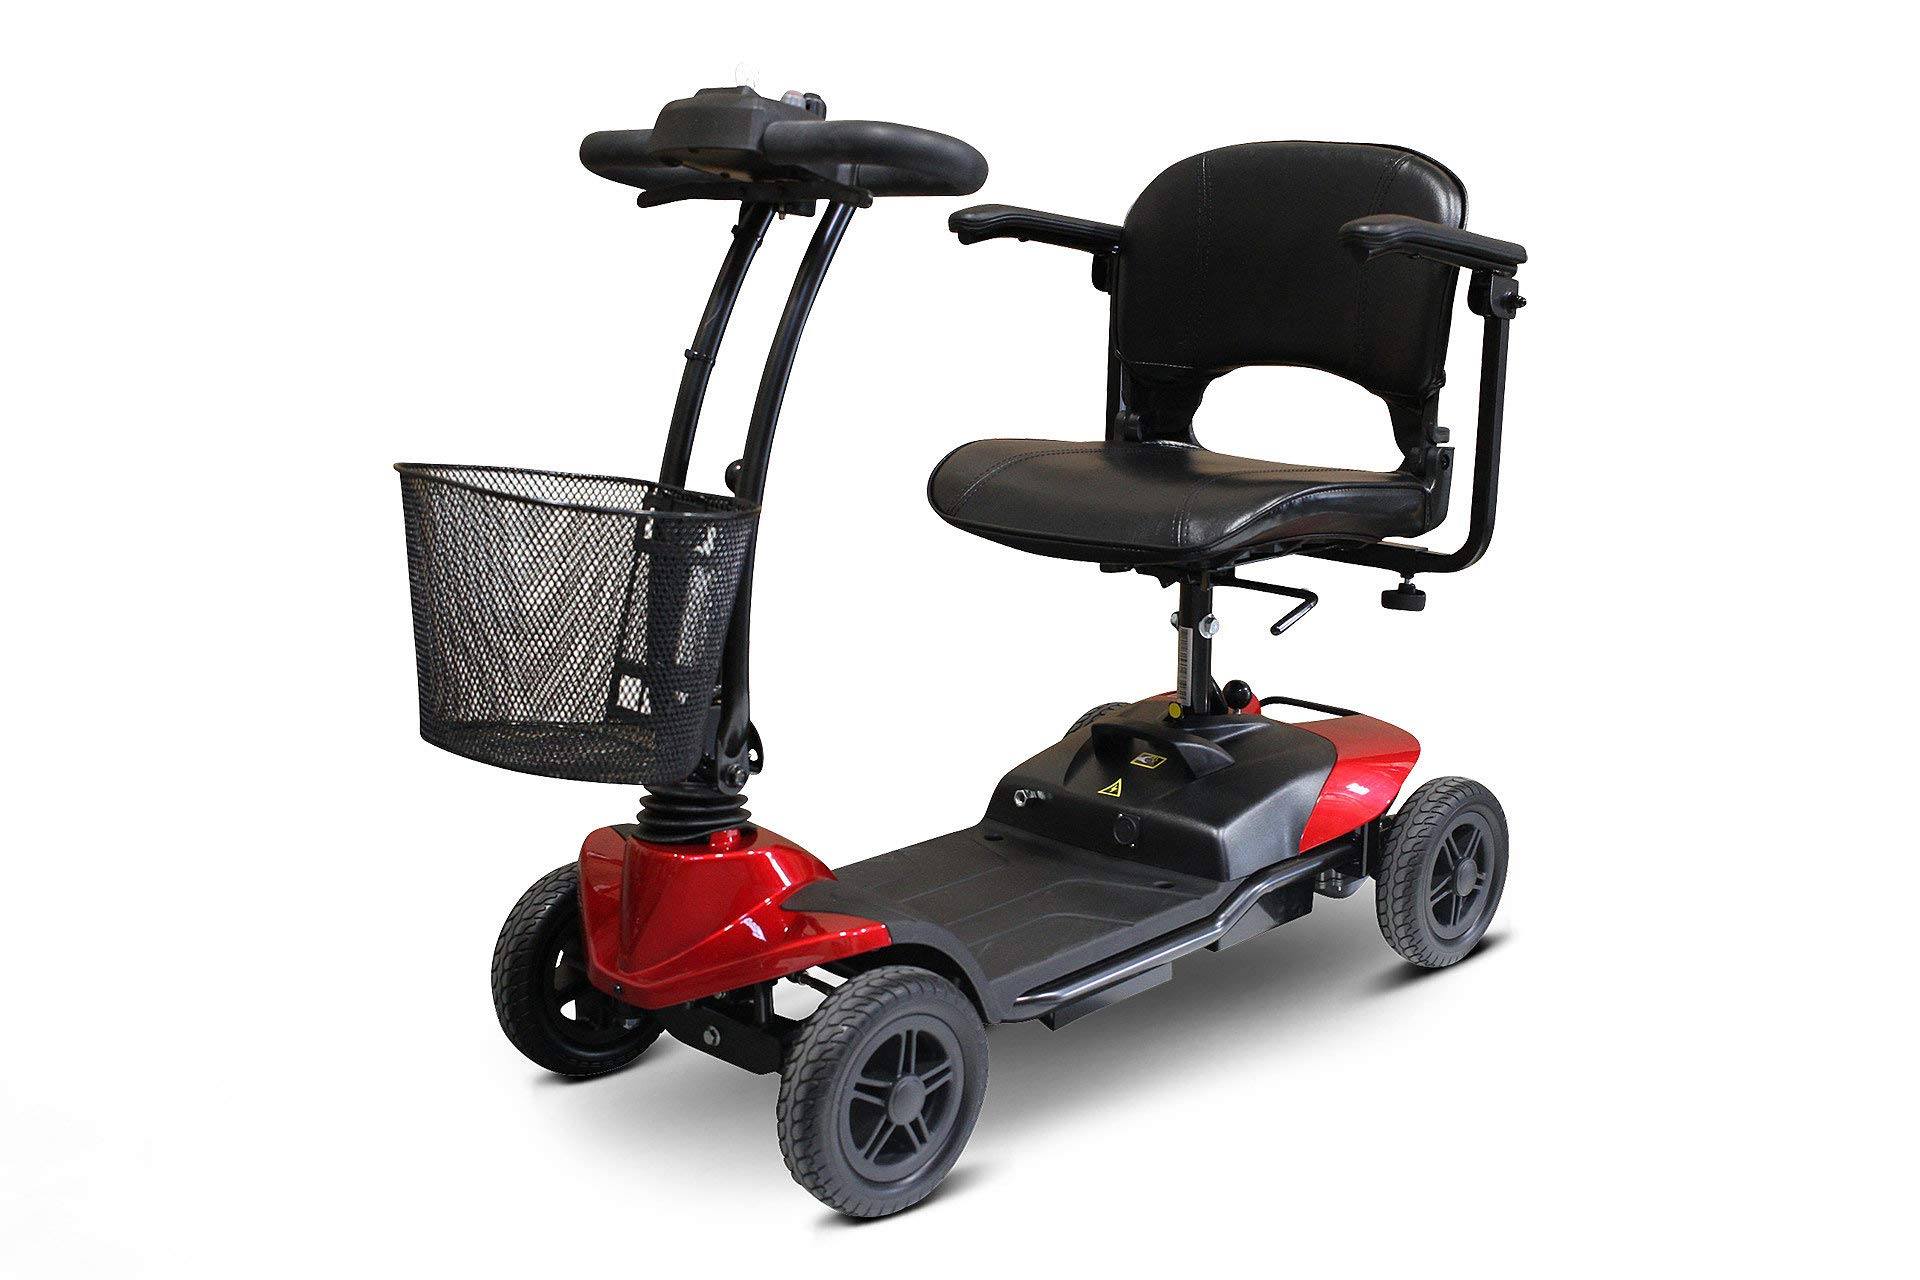 New EWheels Medical EW-M35 Lightweight 4-Wheel Red Scooter by eWheels